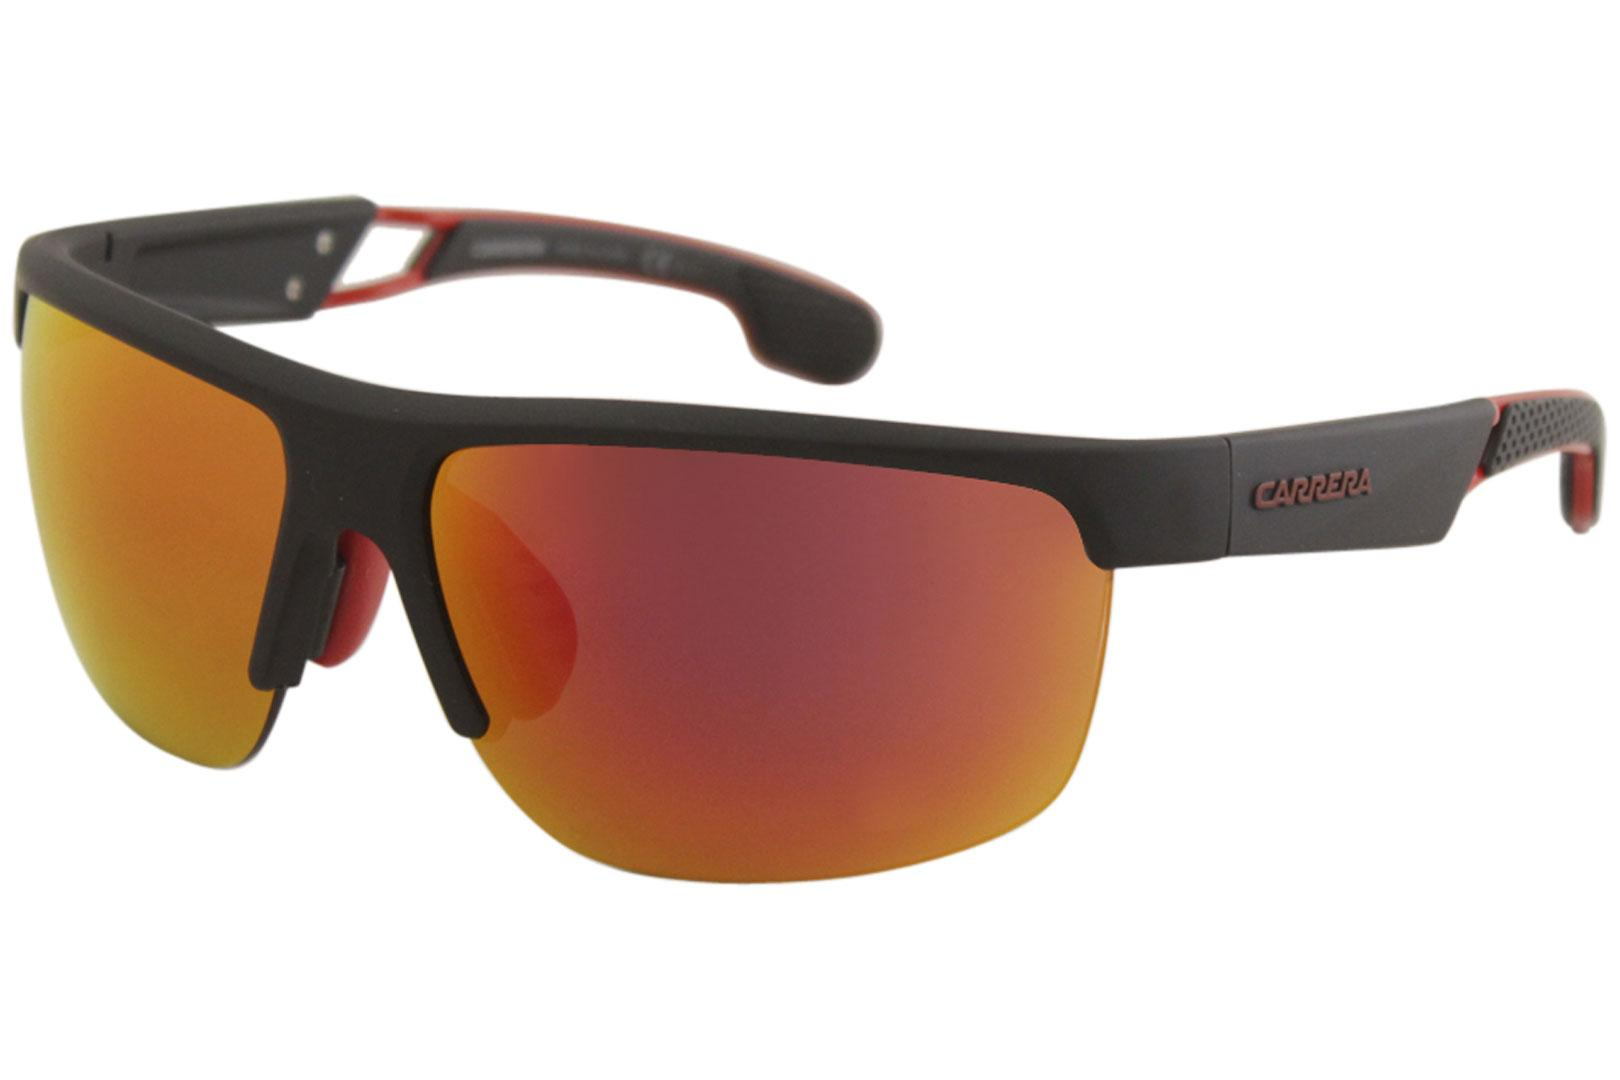 Carrera Men's 4005S 4005/S Fashion Rectangle Sunglasses